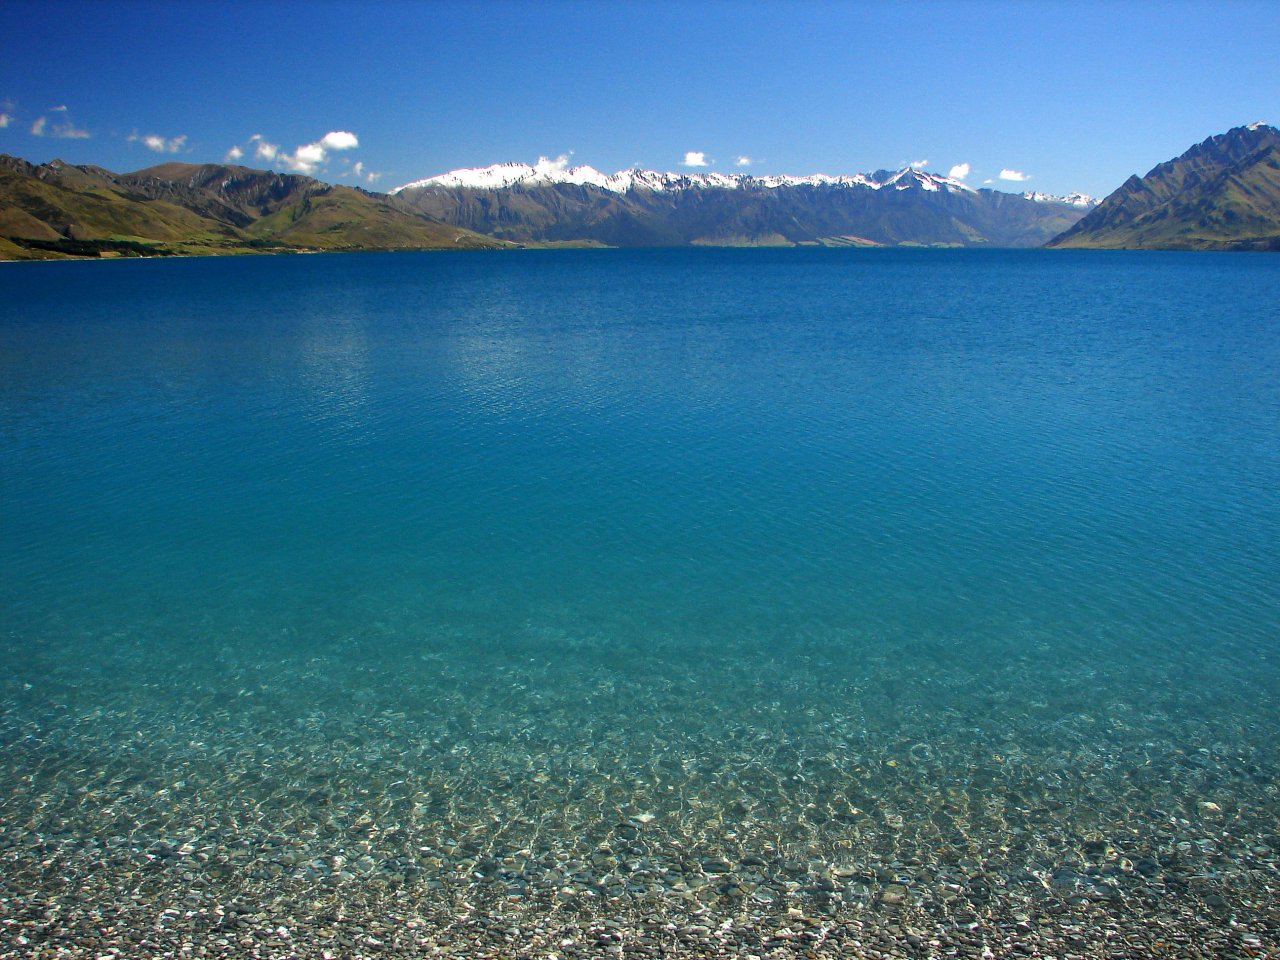 Cute Wallpapers Of Love Hearts Travel Guide To Lake Hawea New Zealand Xcitefun Net